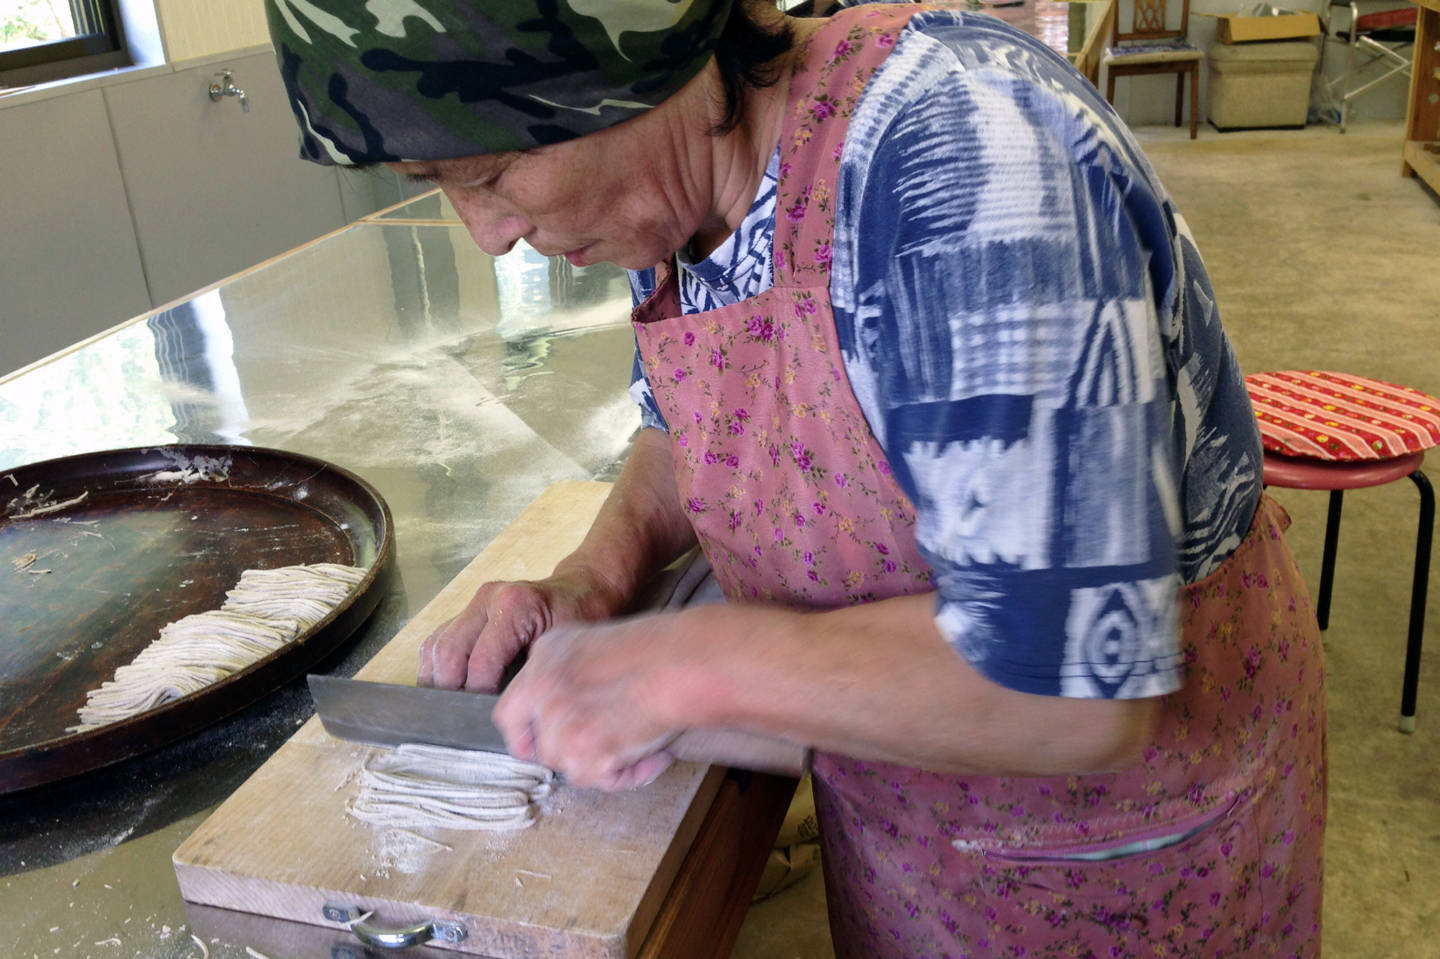 Japan's Centuries-Old Tradition Of Making Soba Noodles